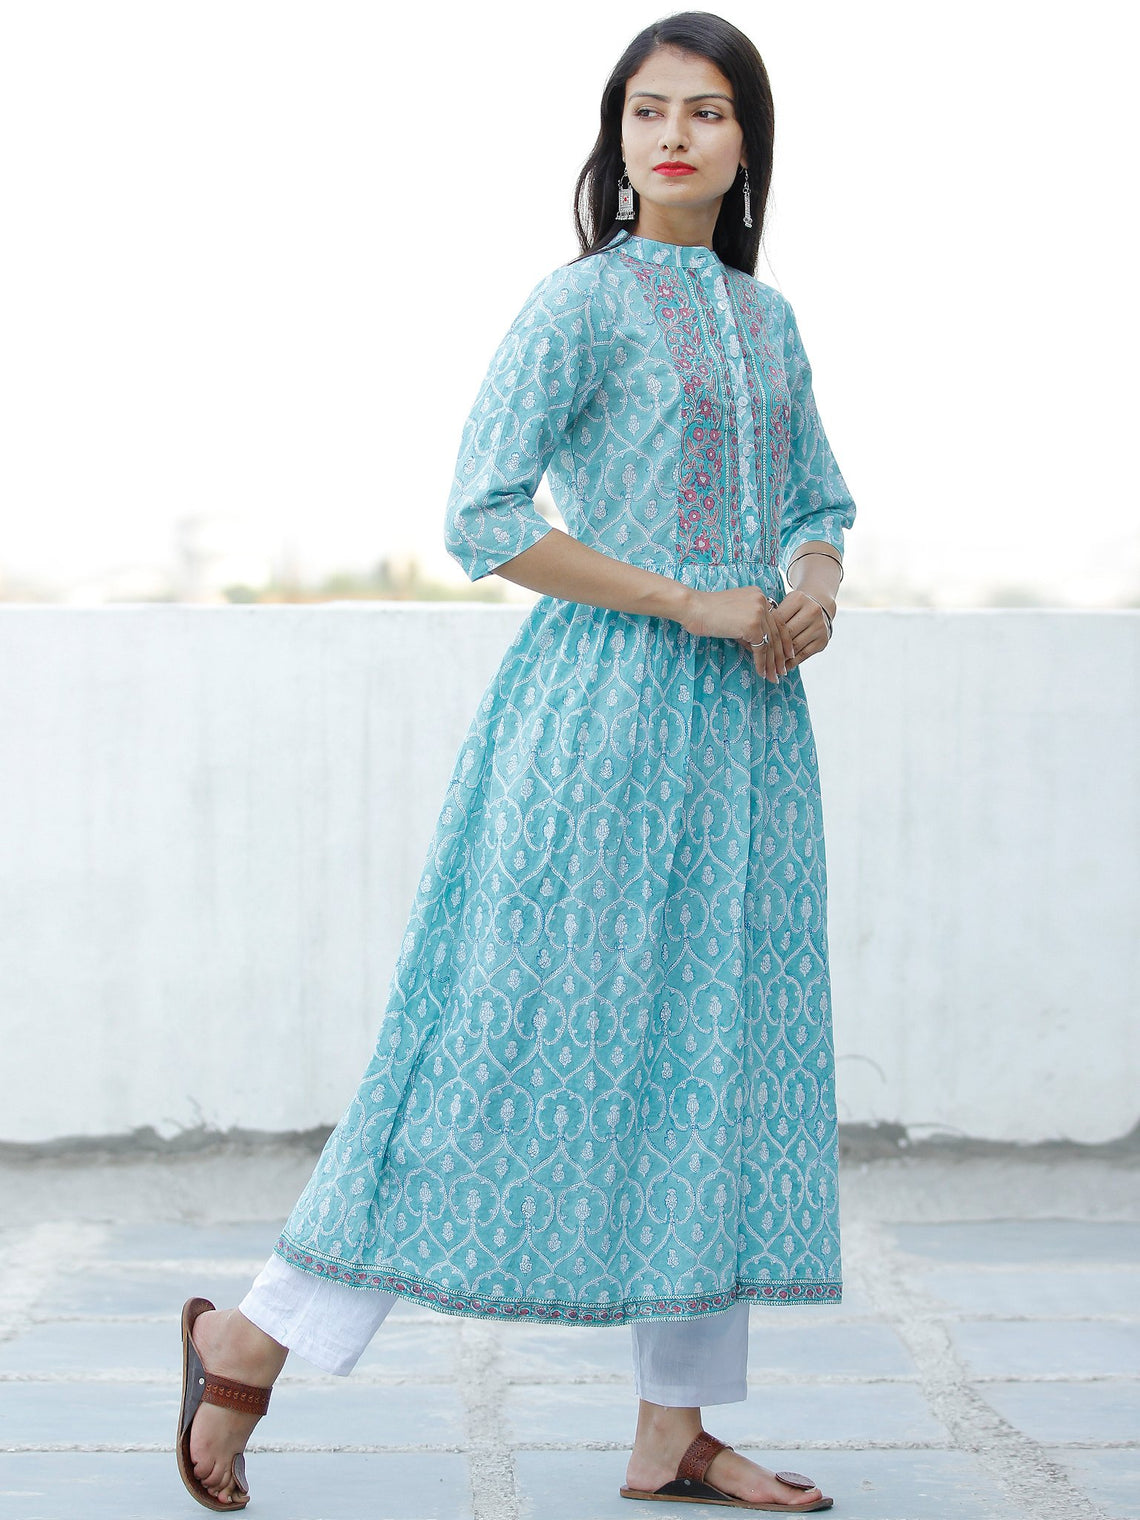 Ligh Sea Green Lavender White Hand Block Printed Cotton Long Kurta With Side Pockets - K177F1913